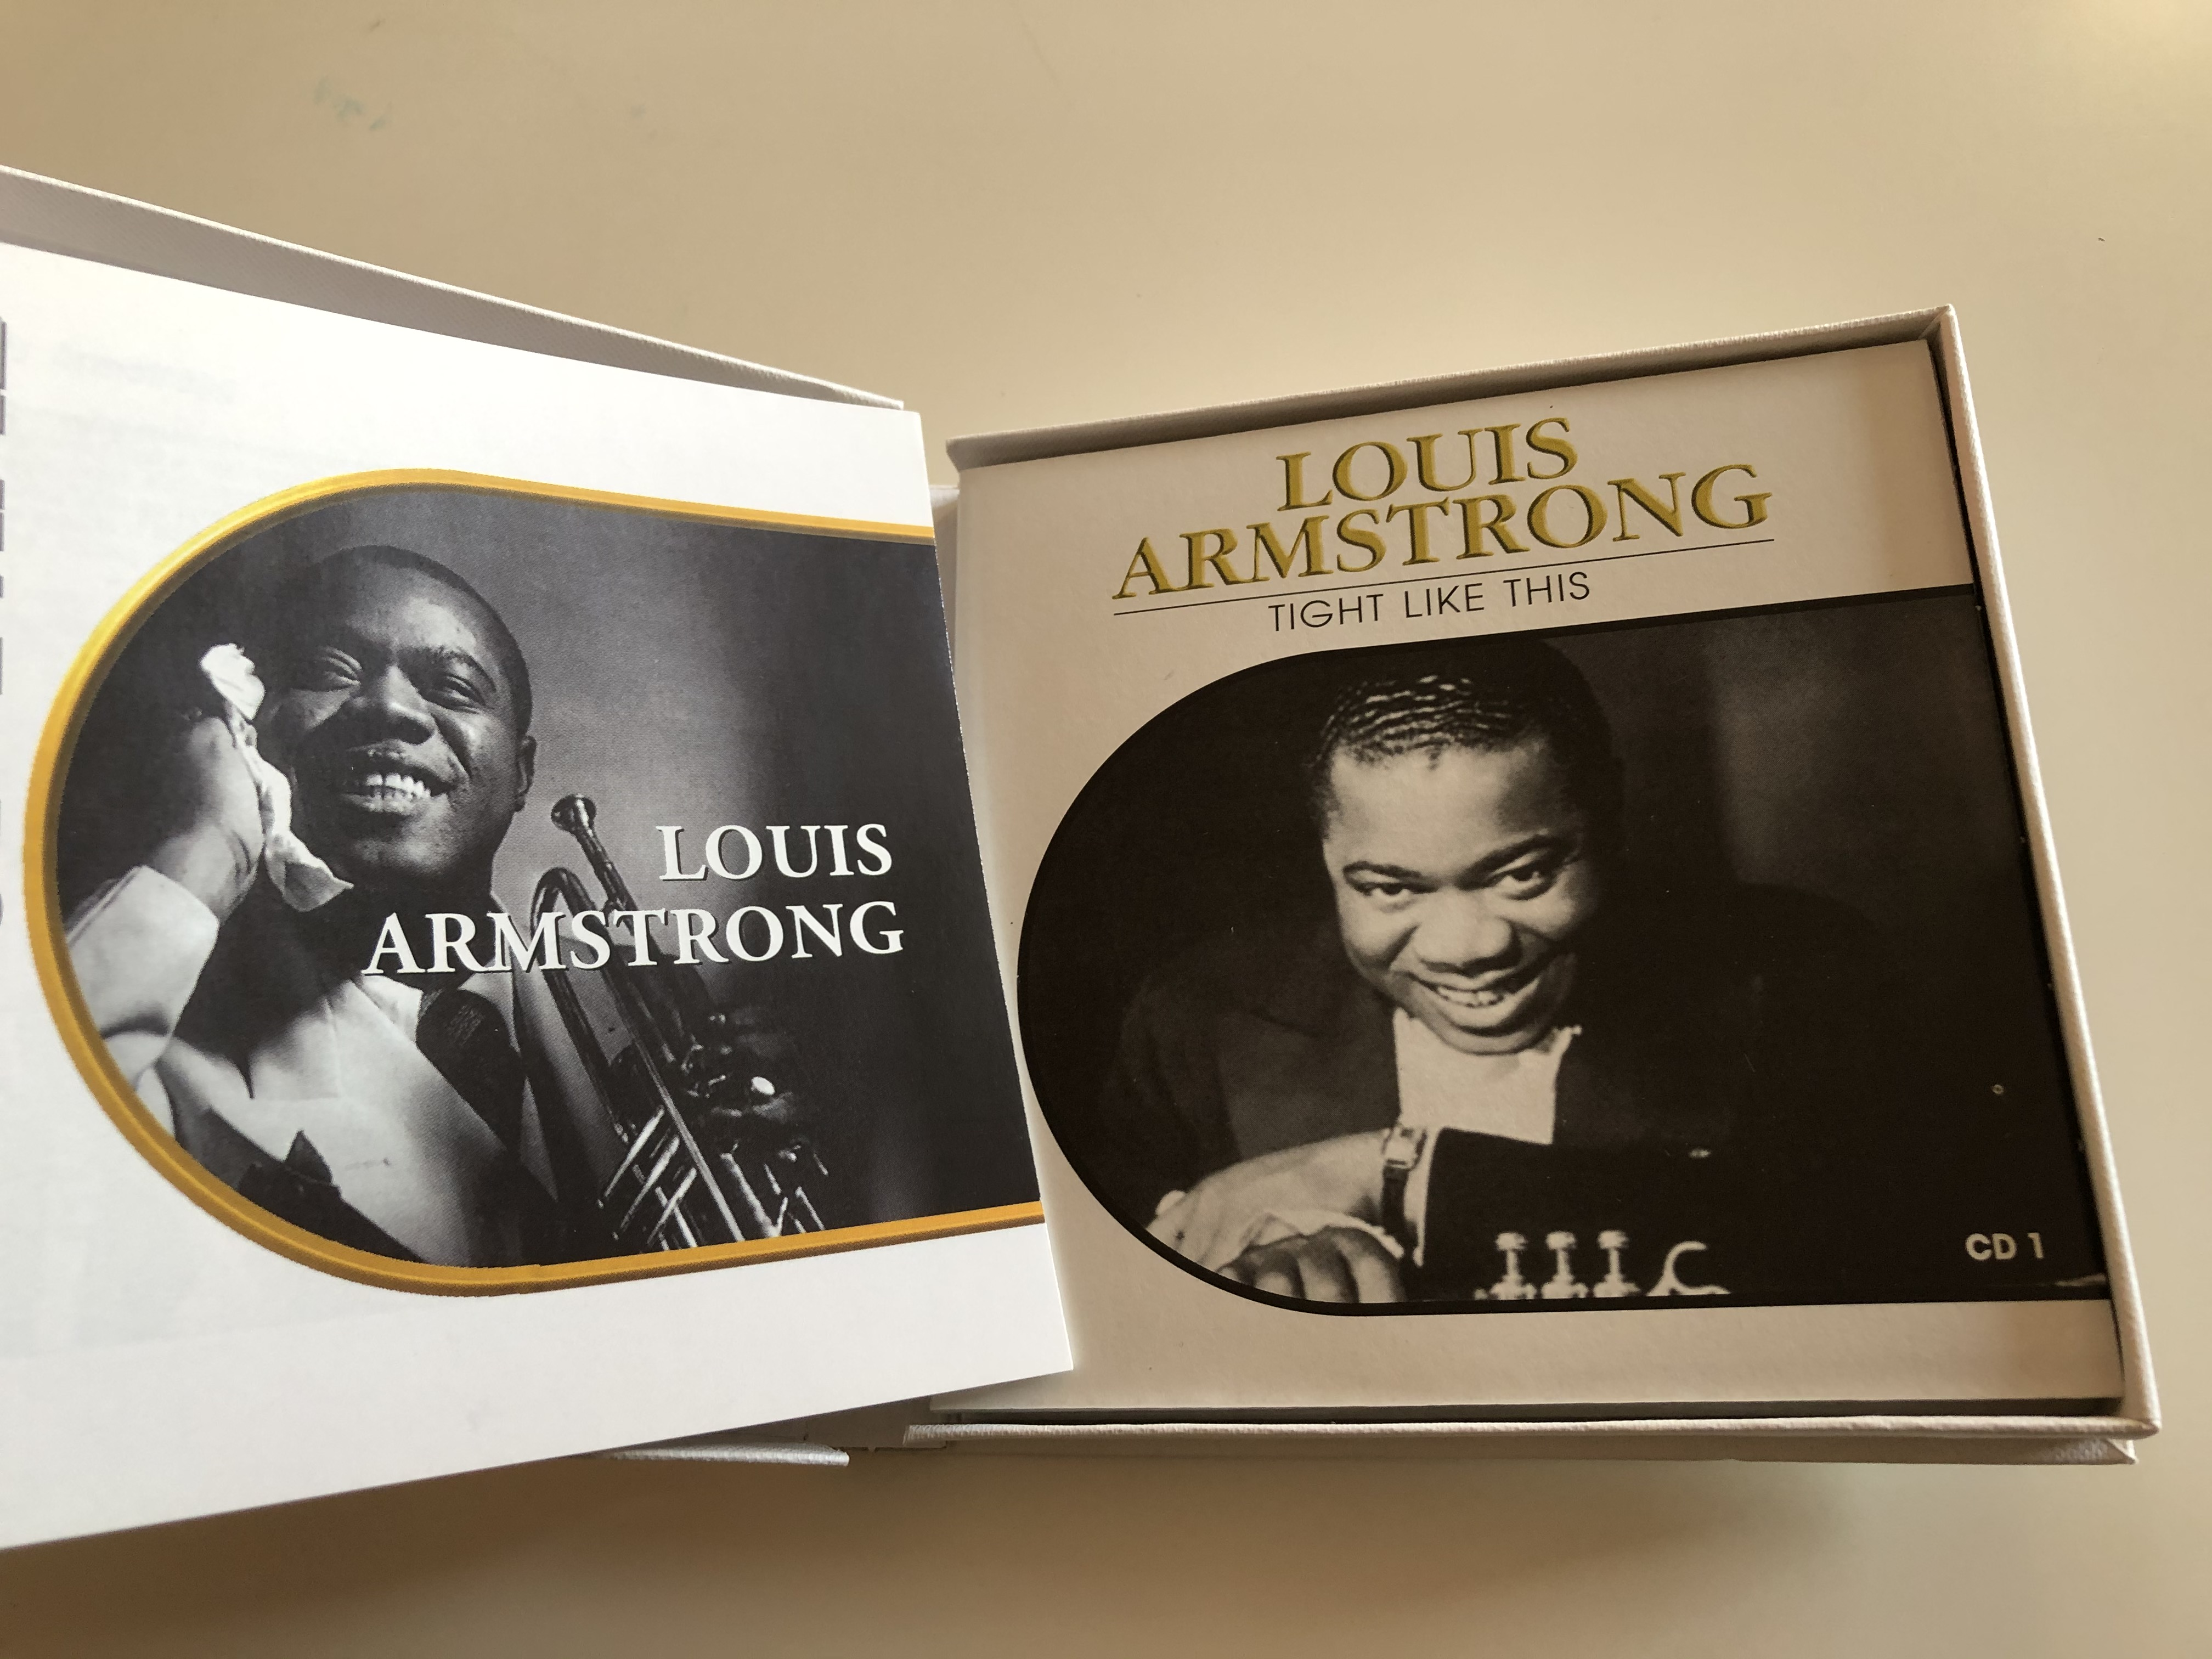 louis-armstrong-hall-of-fame-past-perfect-jazz-line-5x-audio-cd-2002-220179-3-.jpg